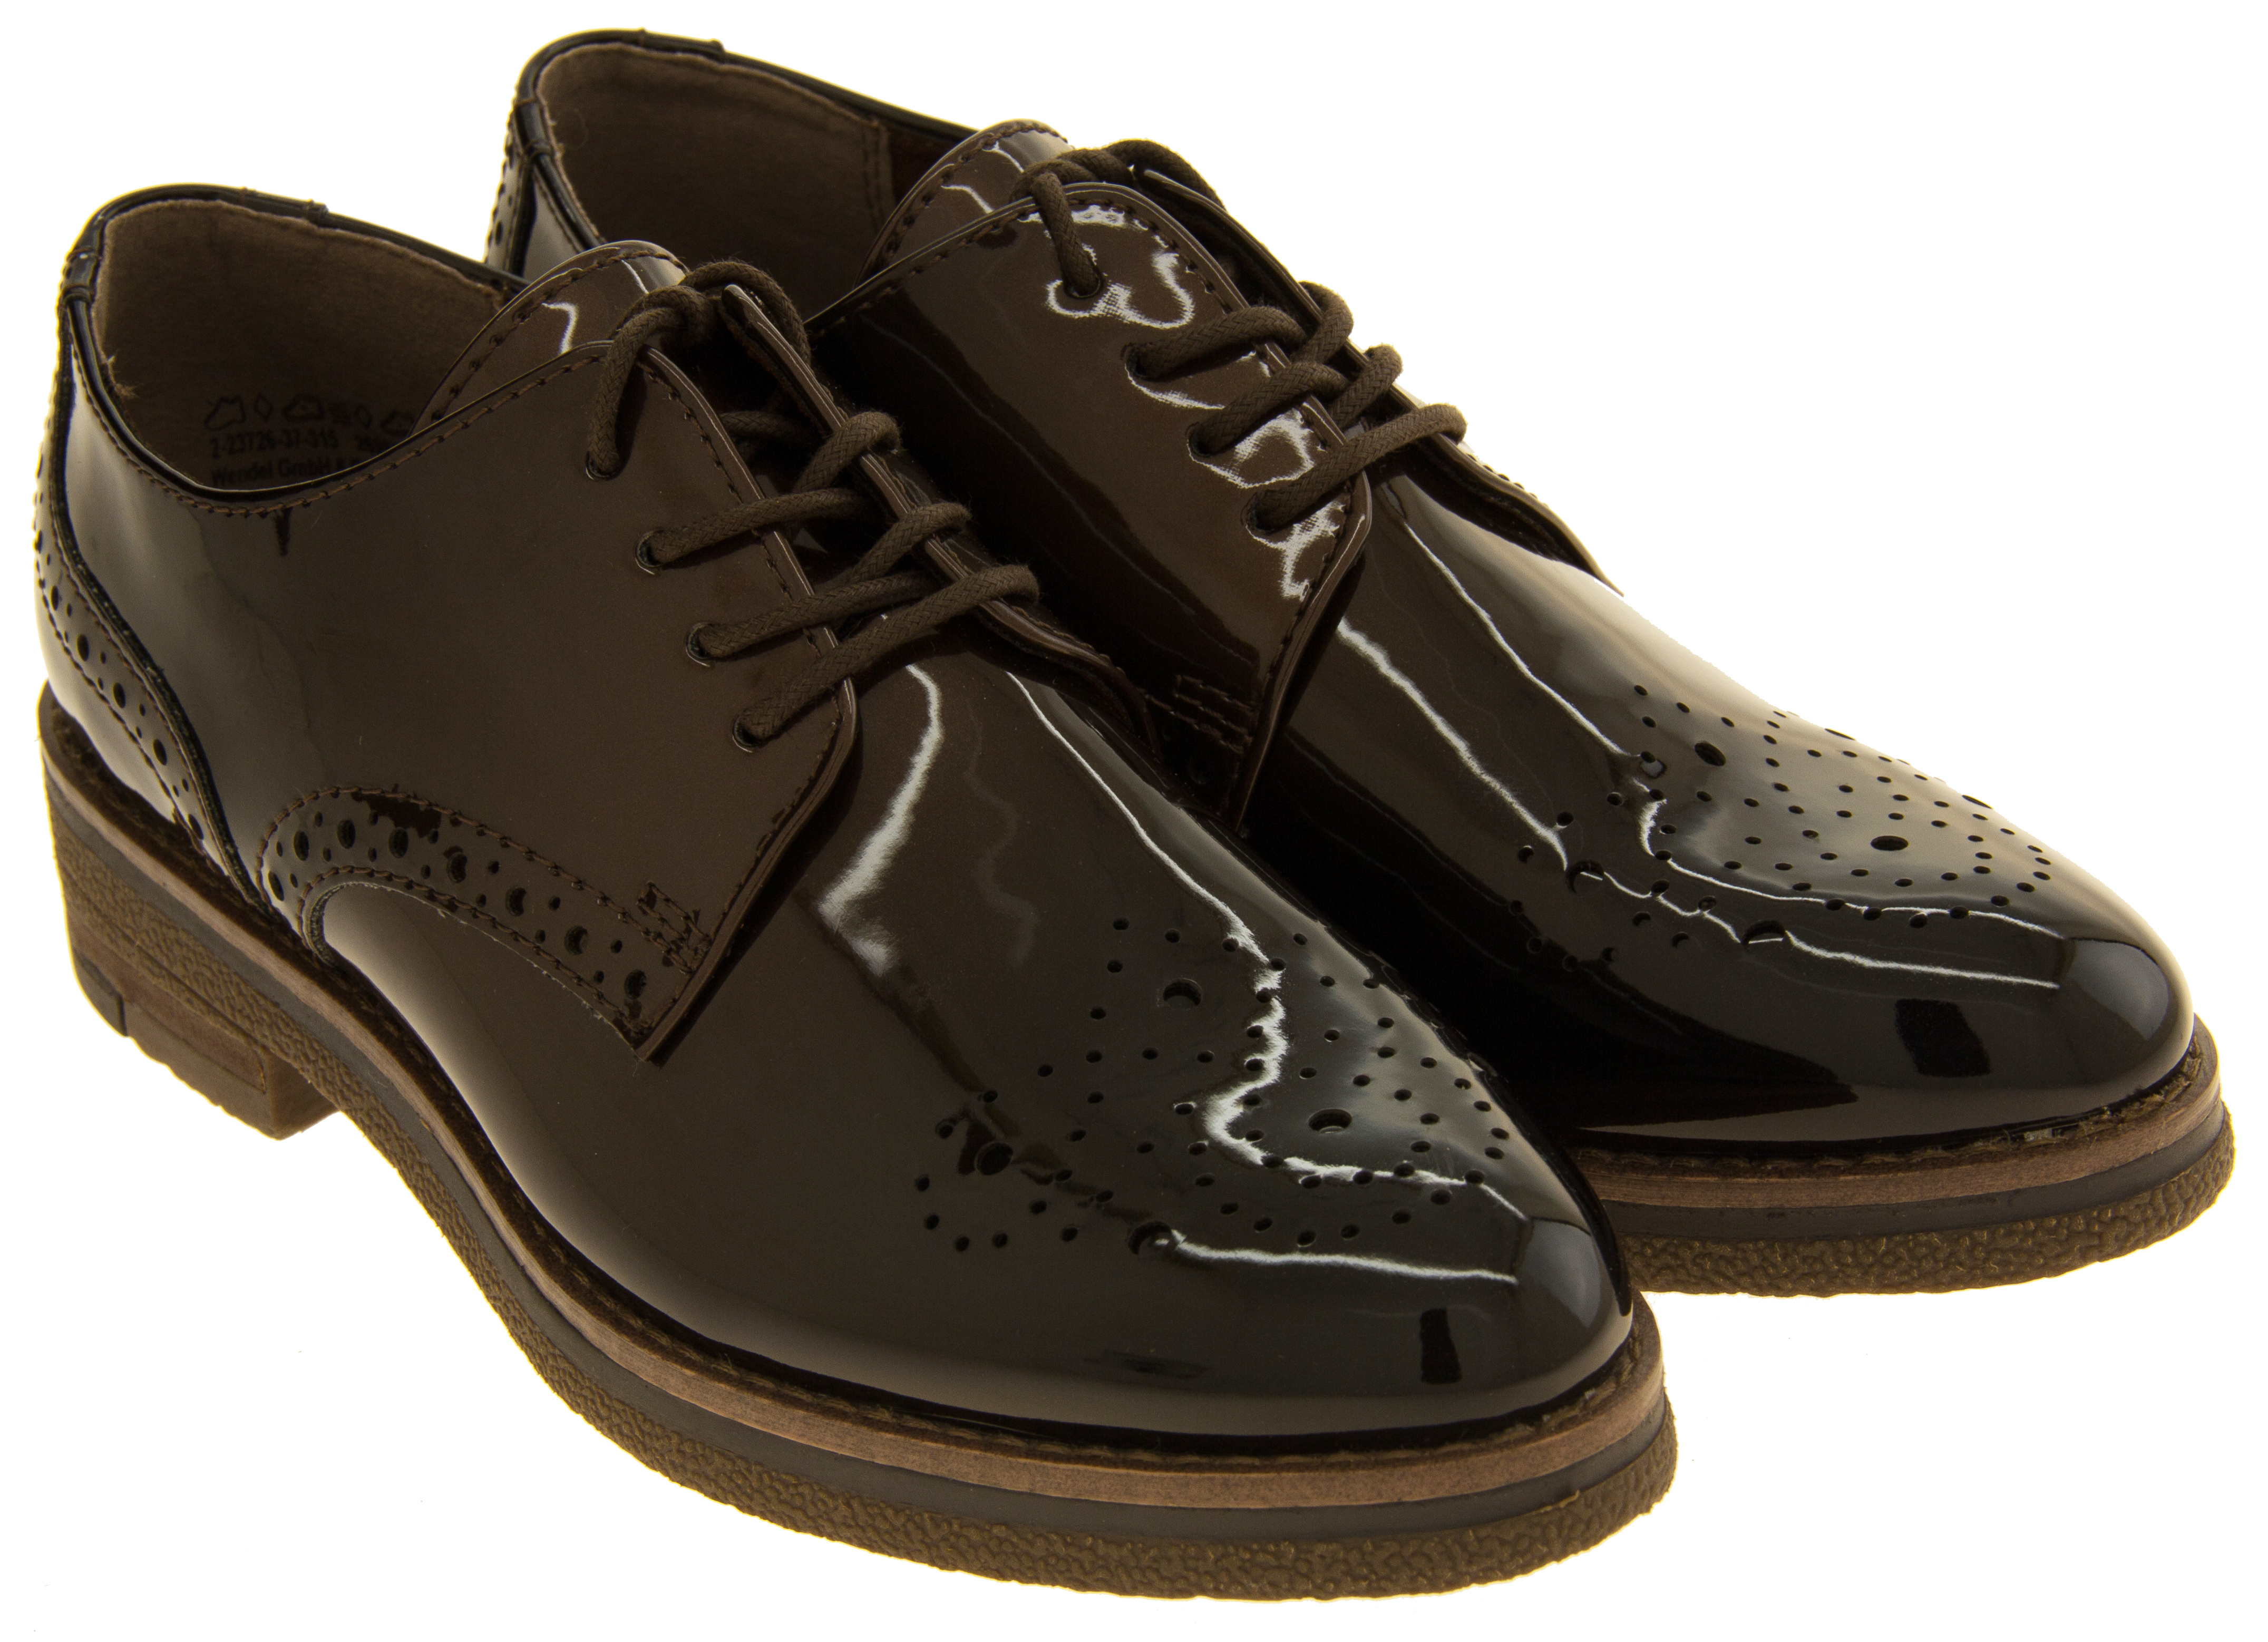 ladies marco tozzi shiny brogues womens lace up work shoes. Black Bedroom Furniture Sets. Home Design Ideas